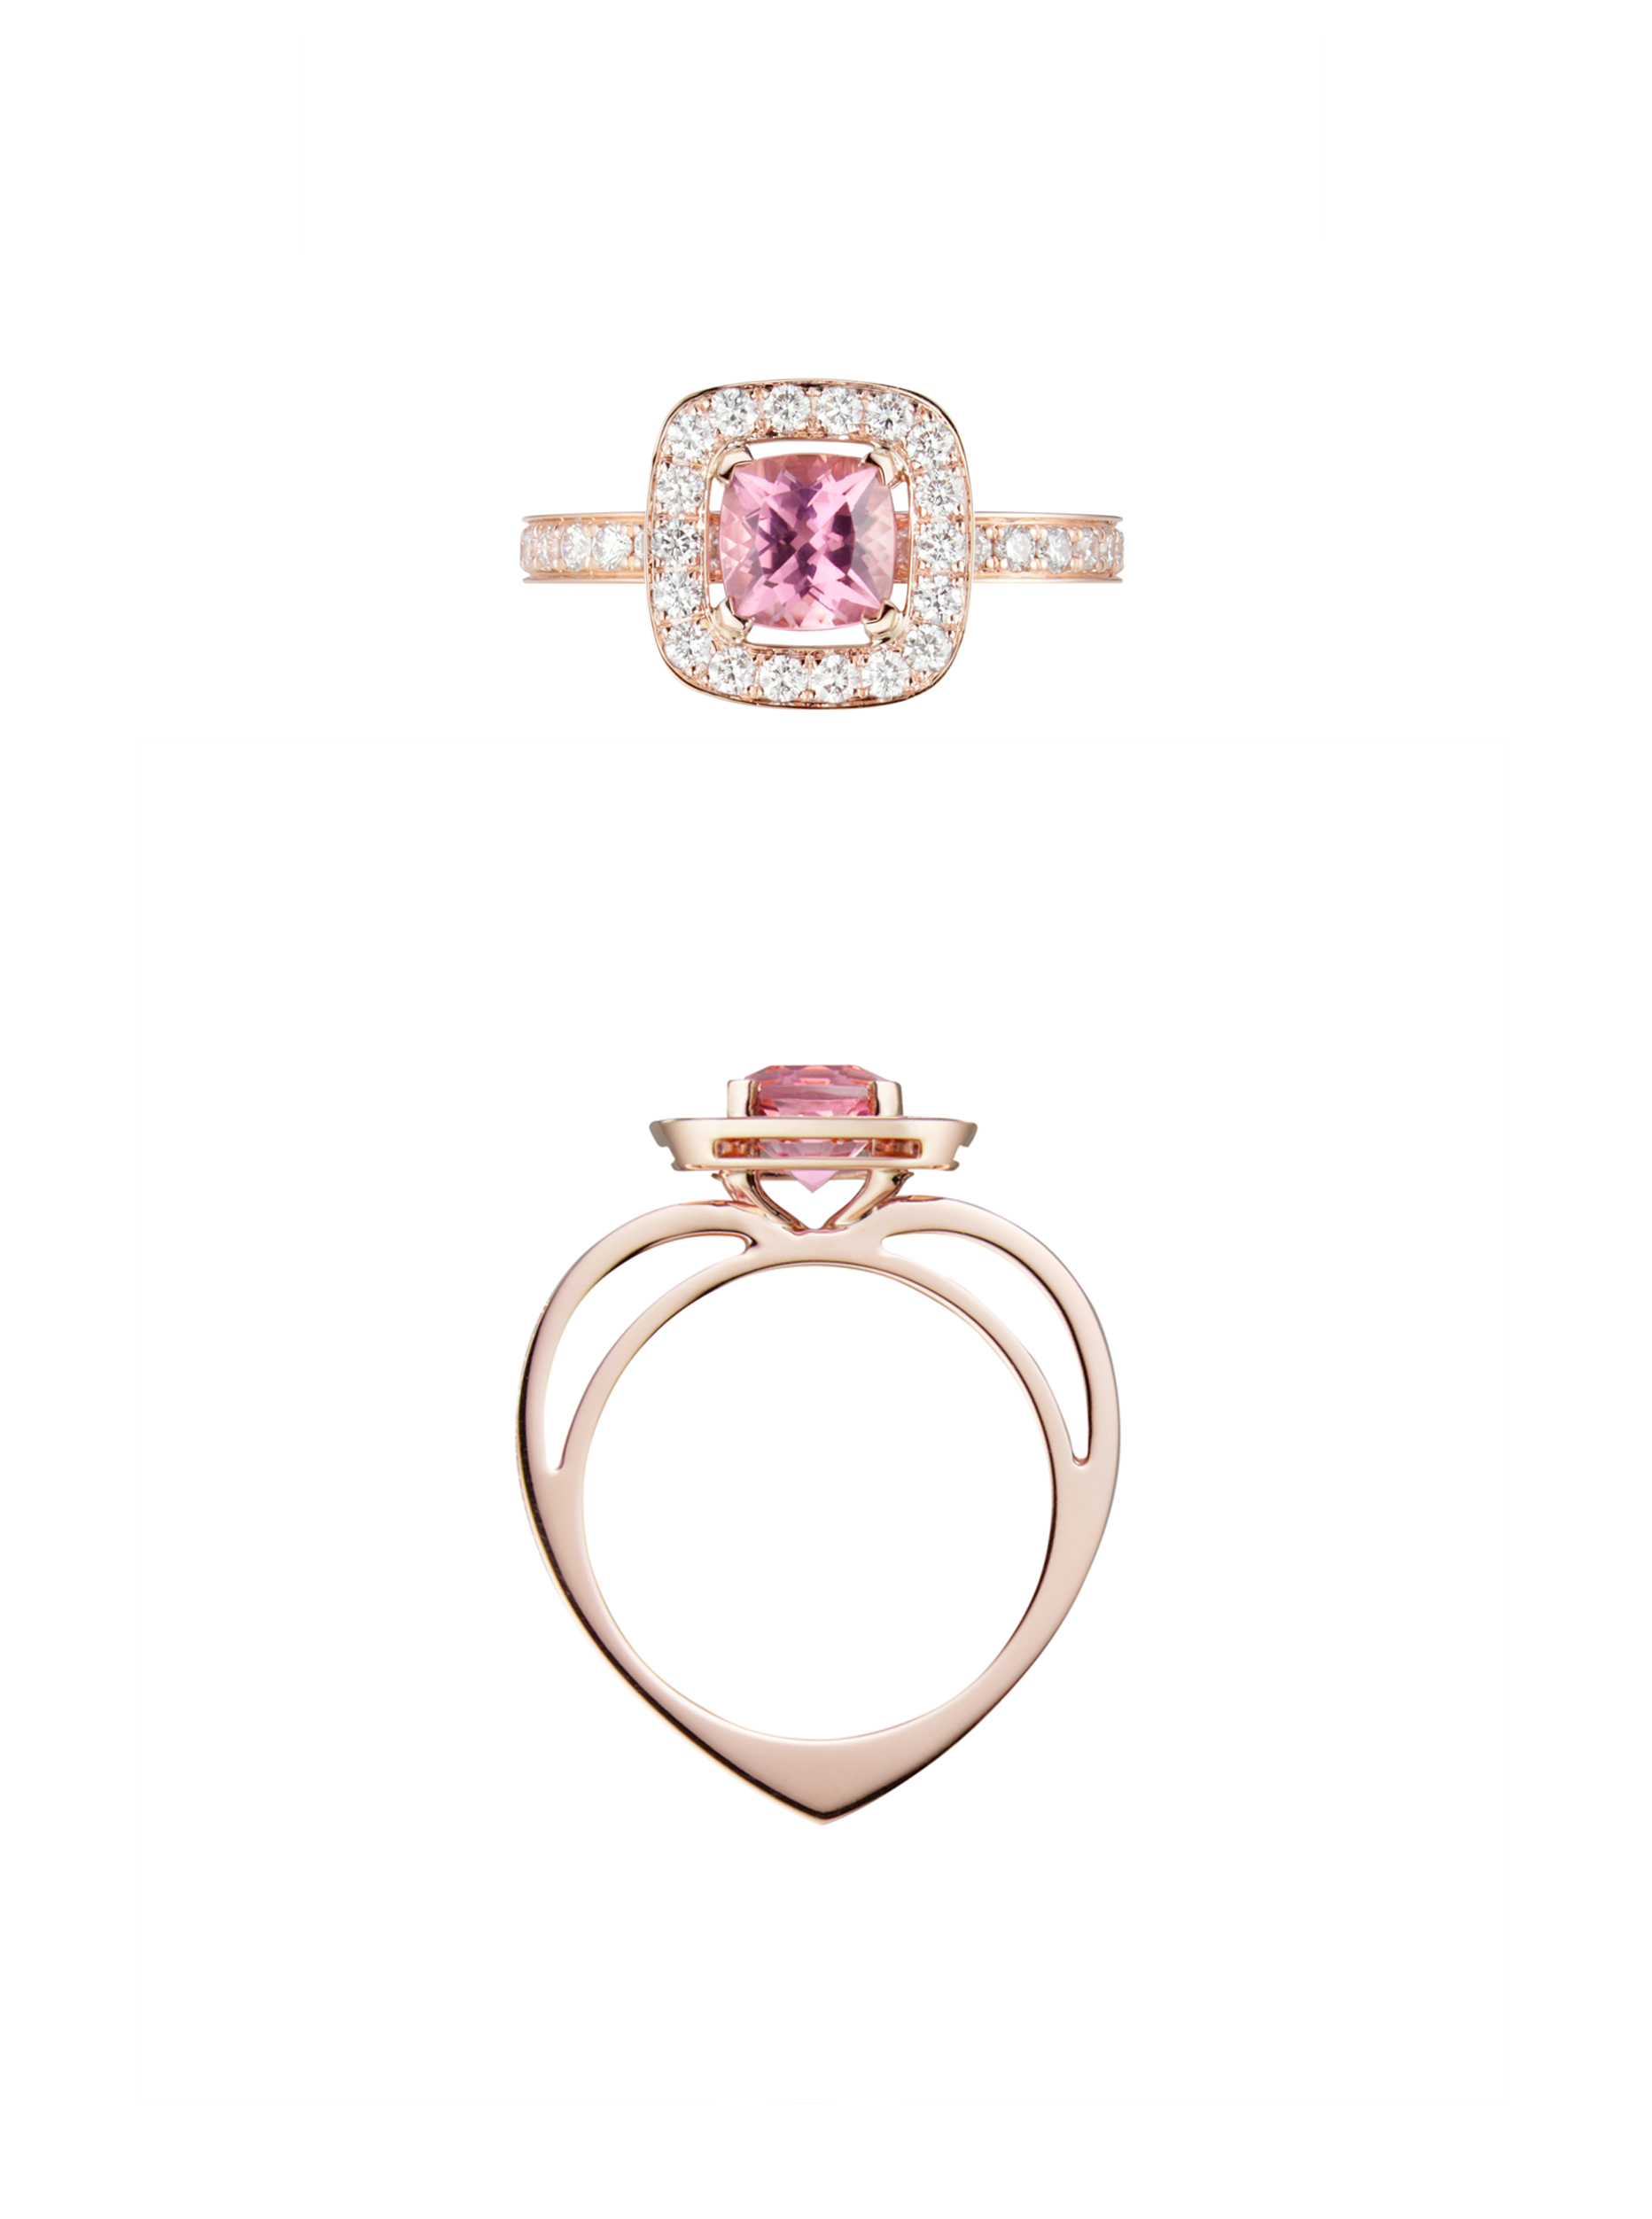 bague-Alissa ring by karpov paris top and side